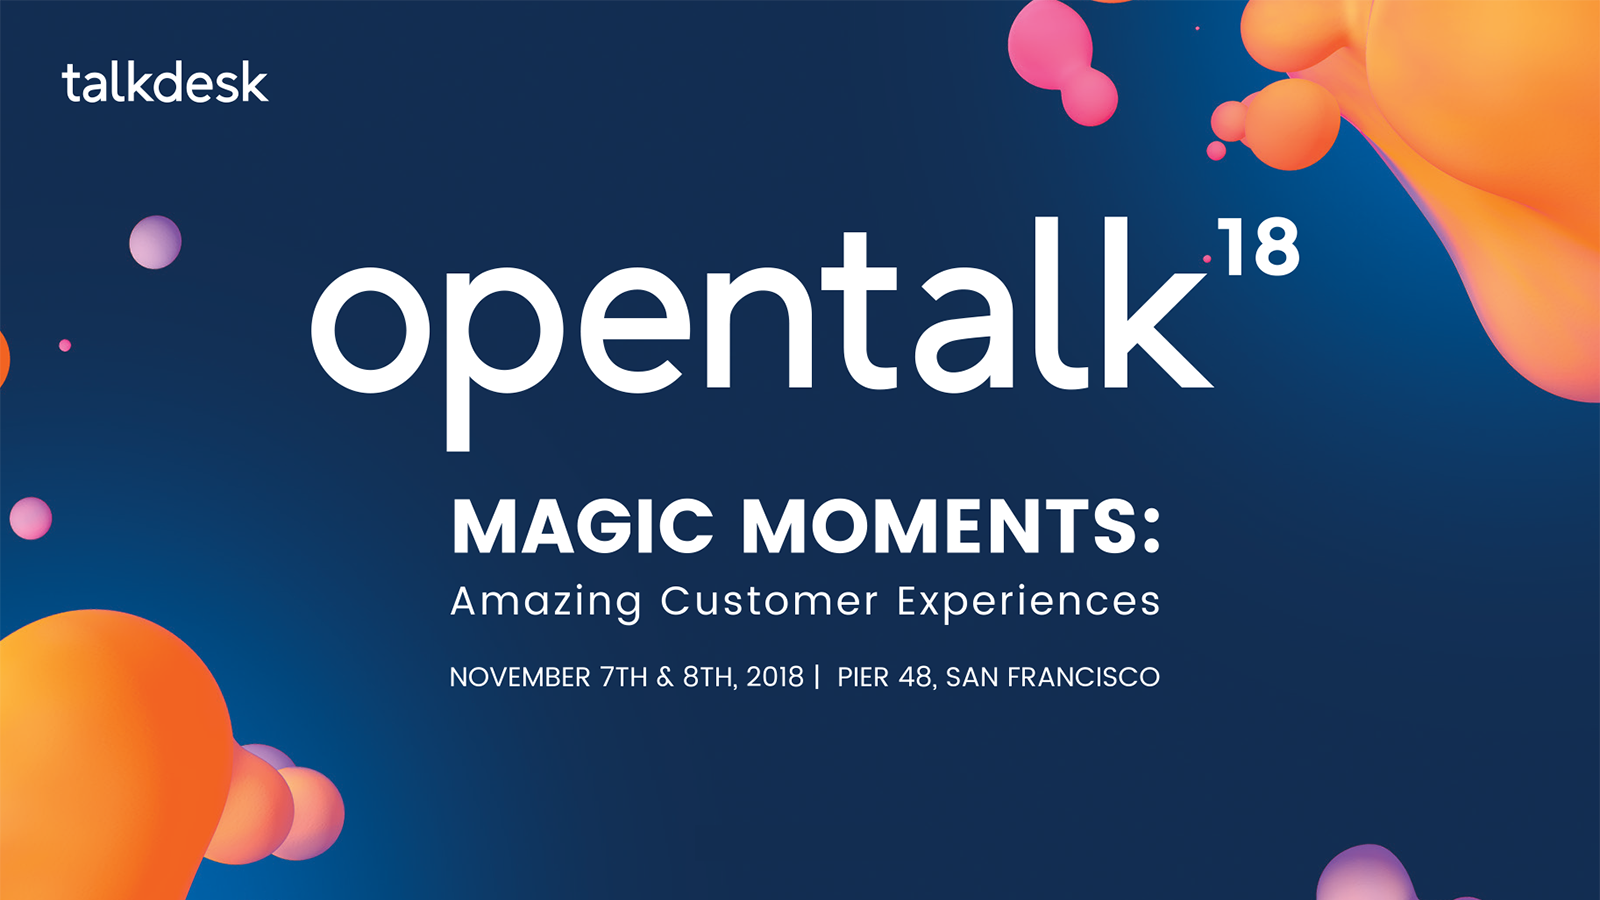 Behavioral Signals at Opentalk2018